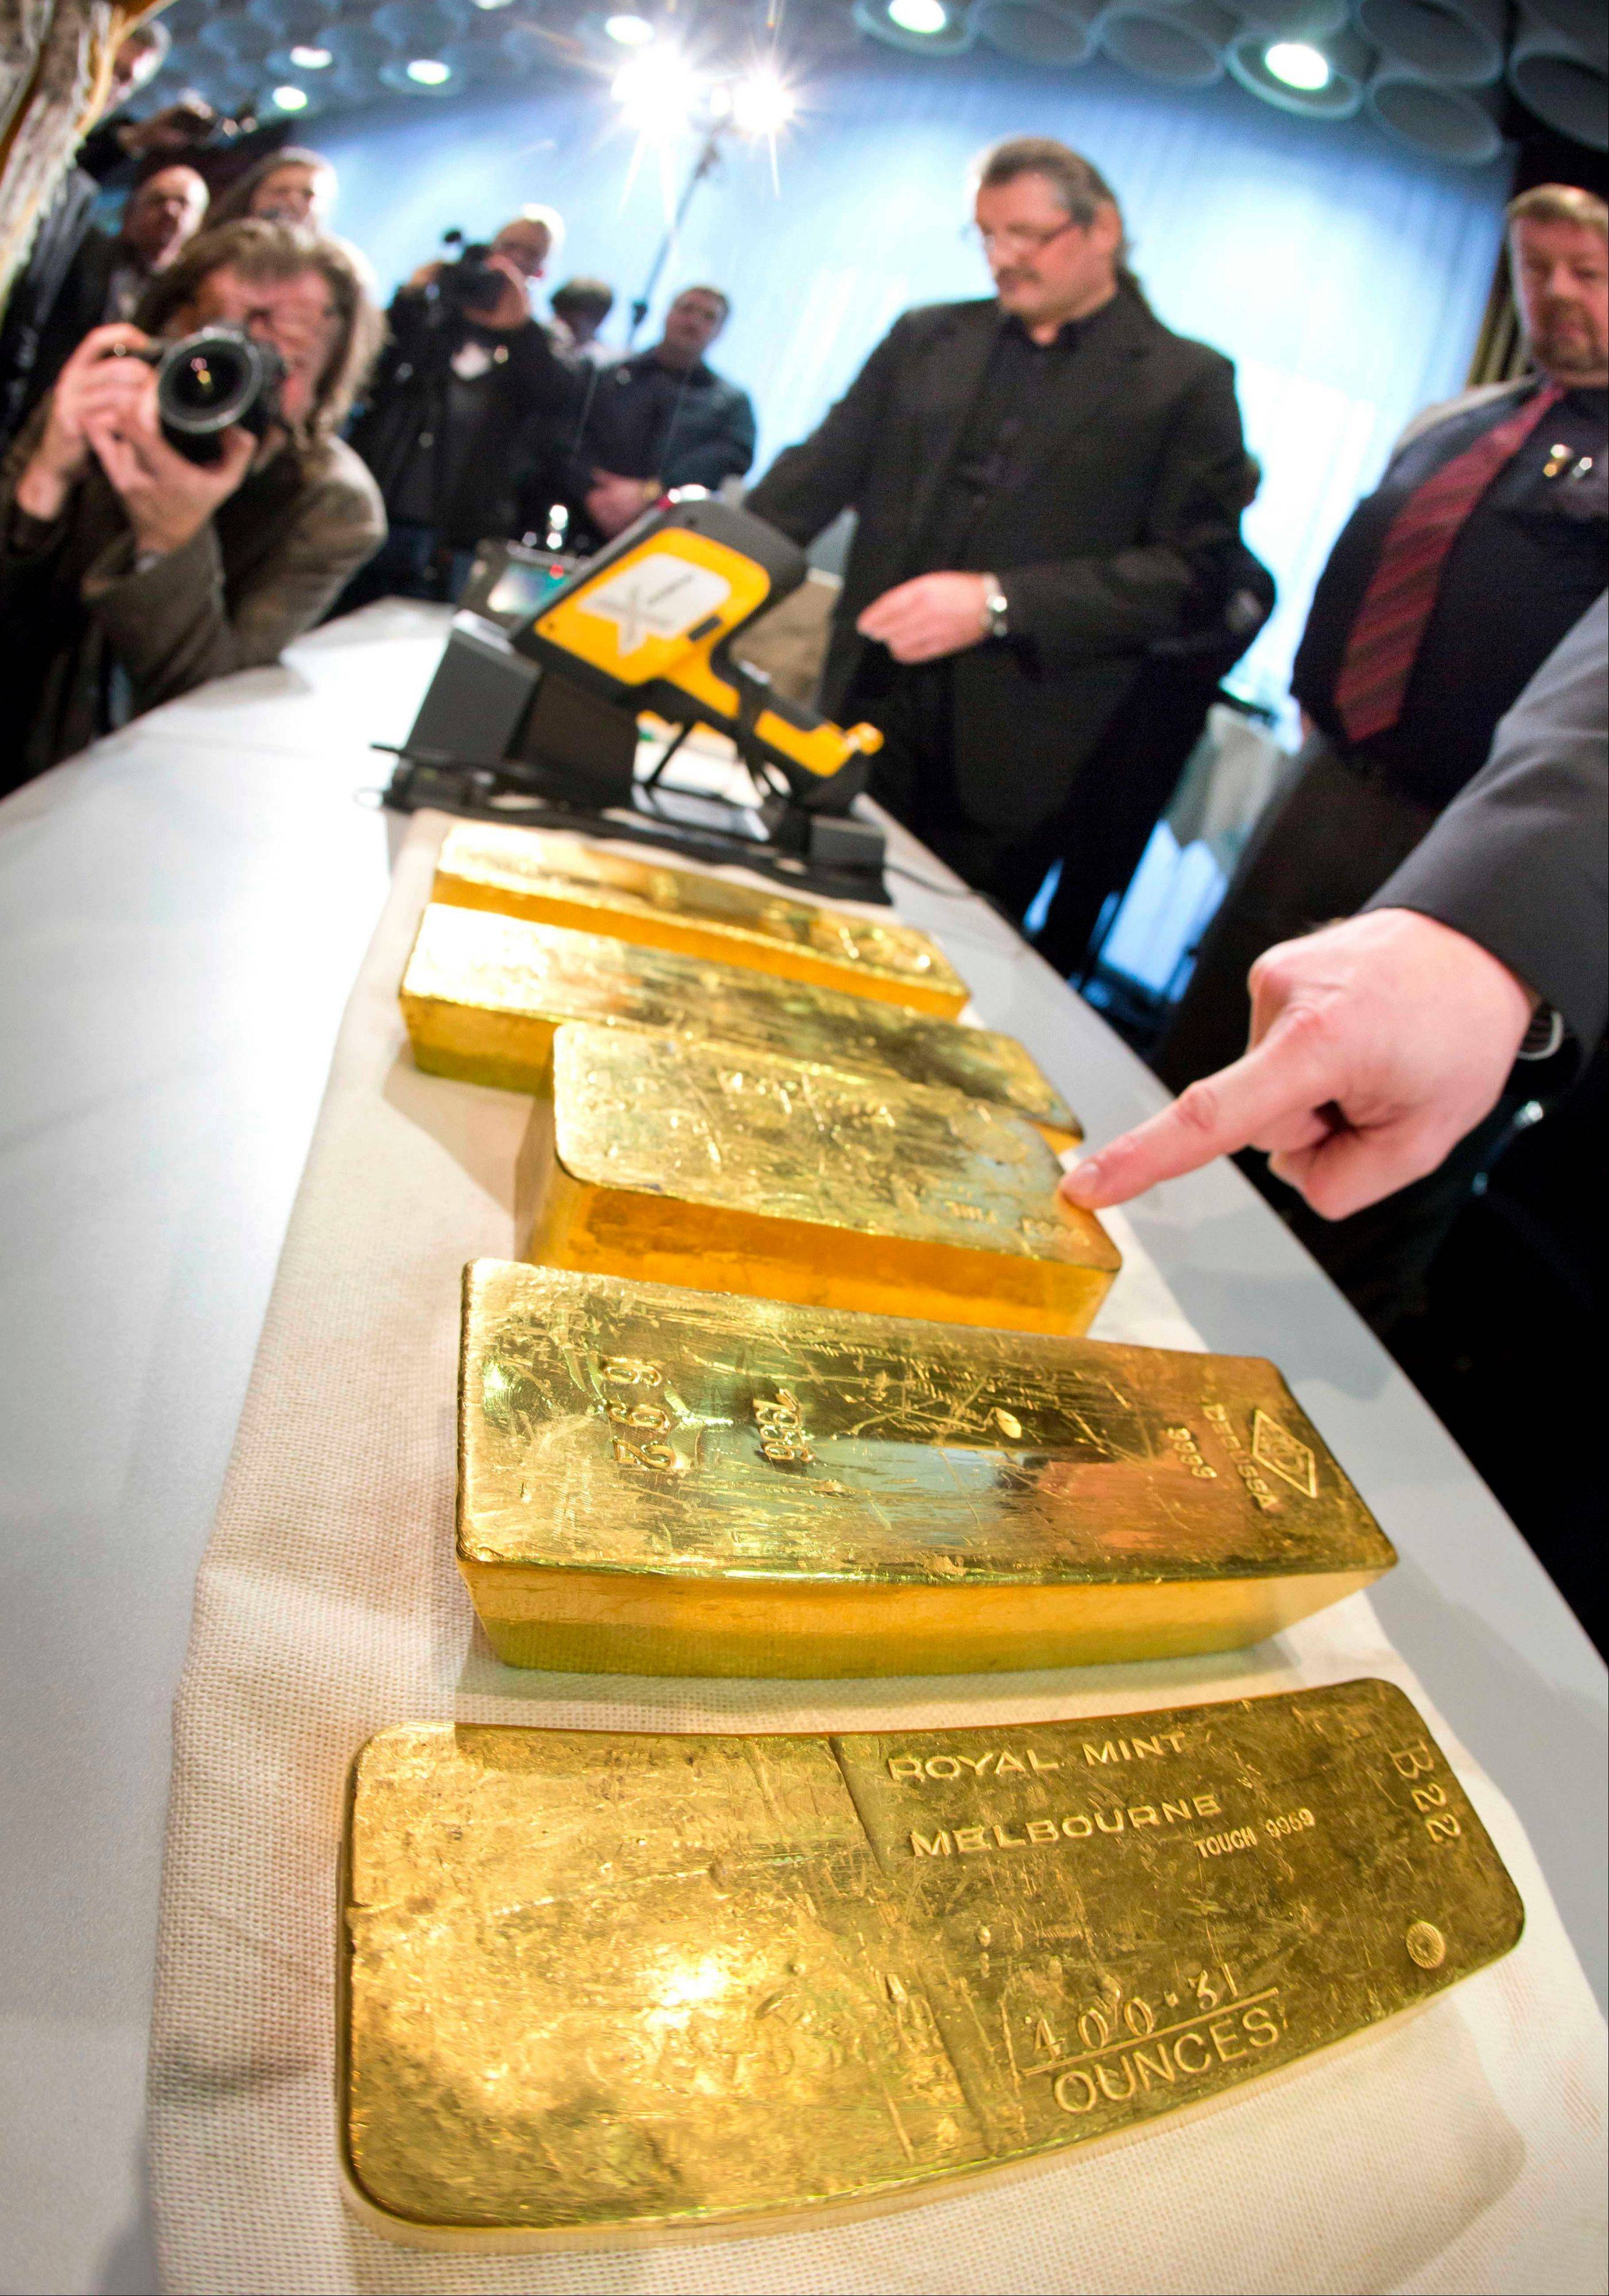 Gold ingots are on display during a press conference of Germany's Central Bank Wednesday at their headquarters in Frankfurt.